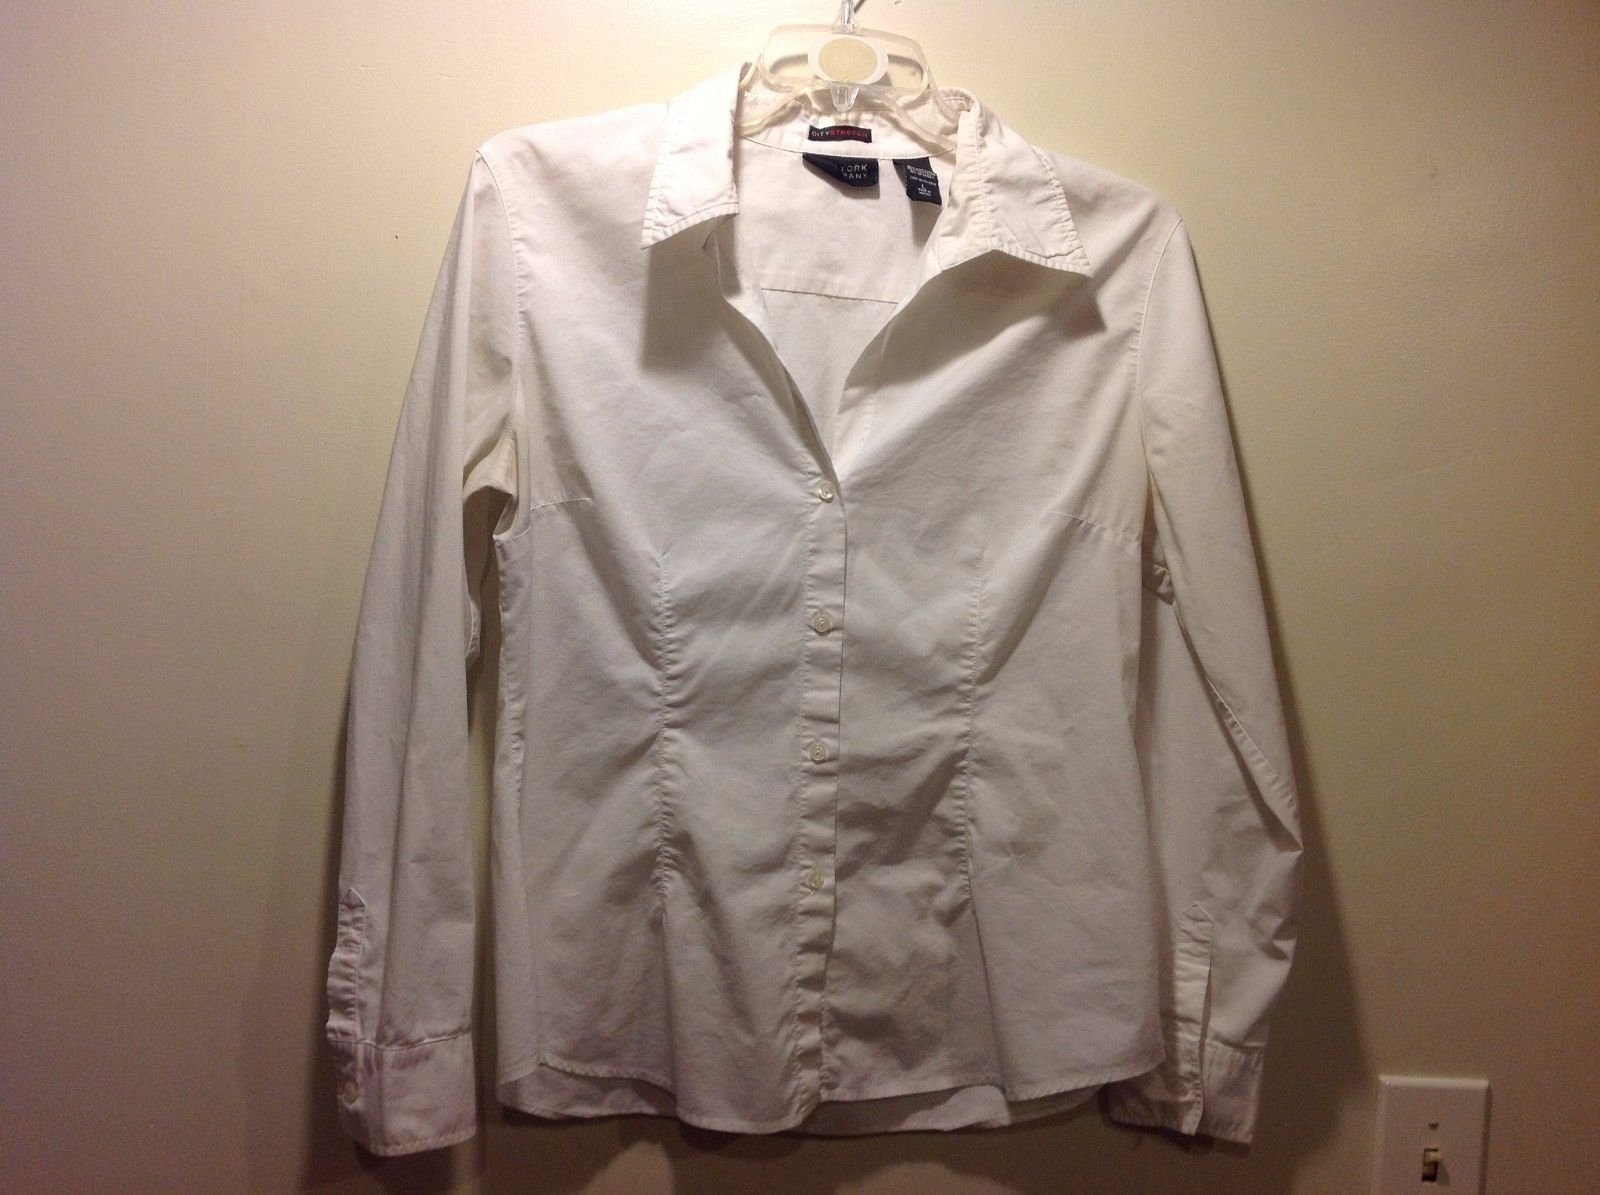 Ladies White Long Sleeve Open Collared Blouse by New York and Co Sz L